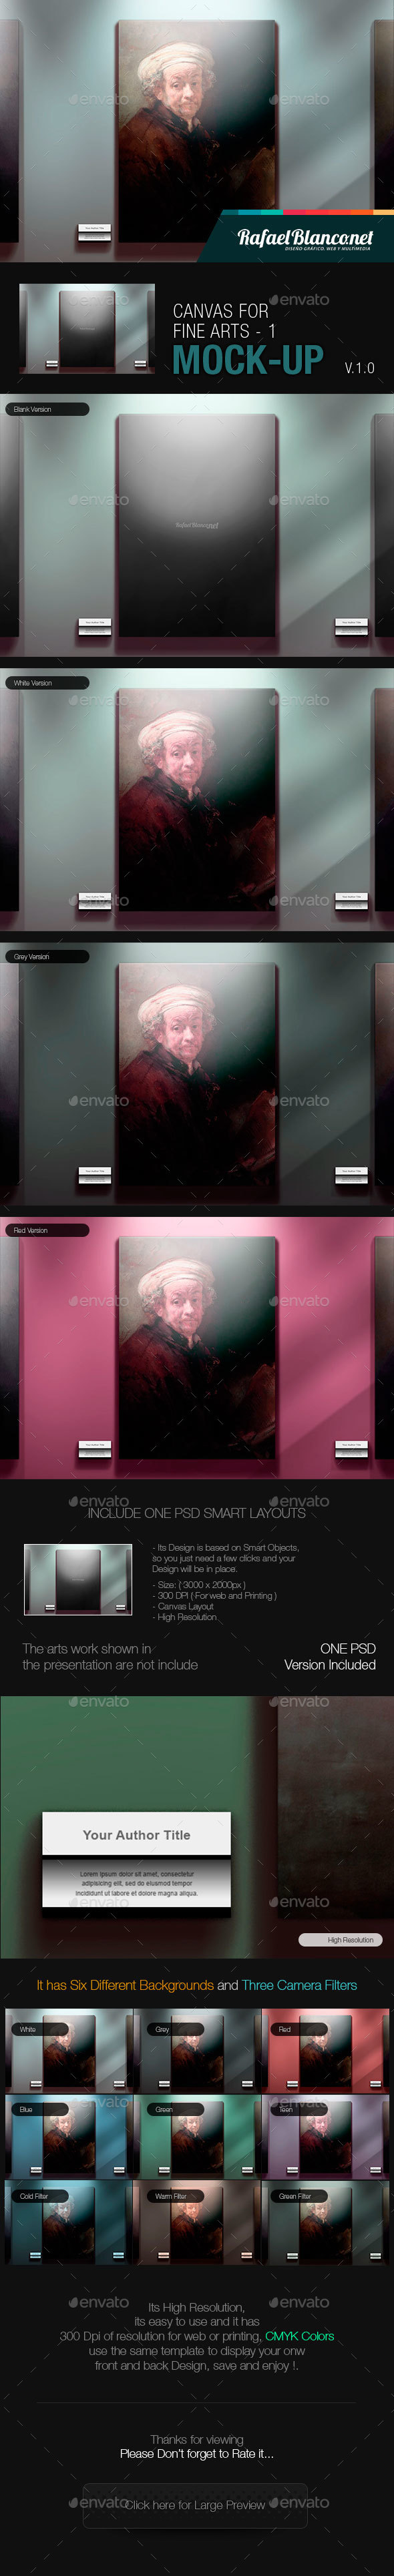 Canvas for Fine Arts Mock-Up 1 - Miscellaneous Displays